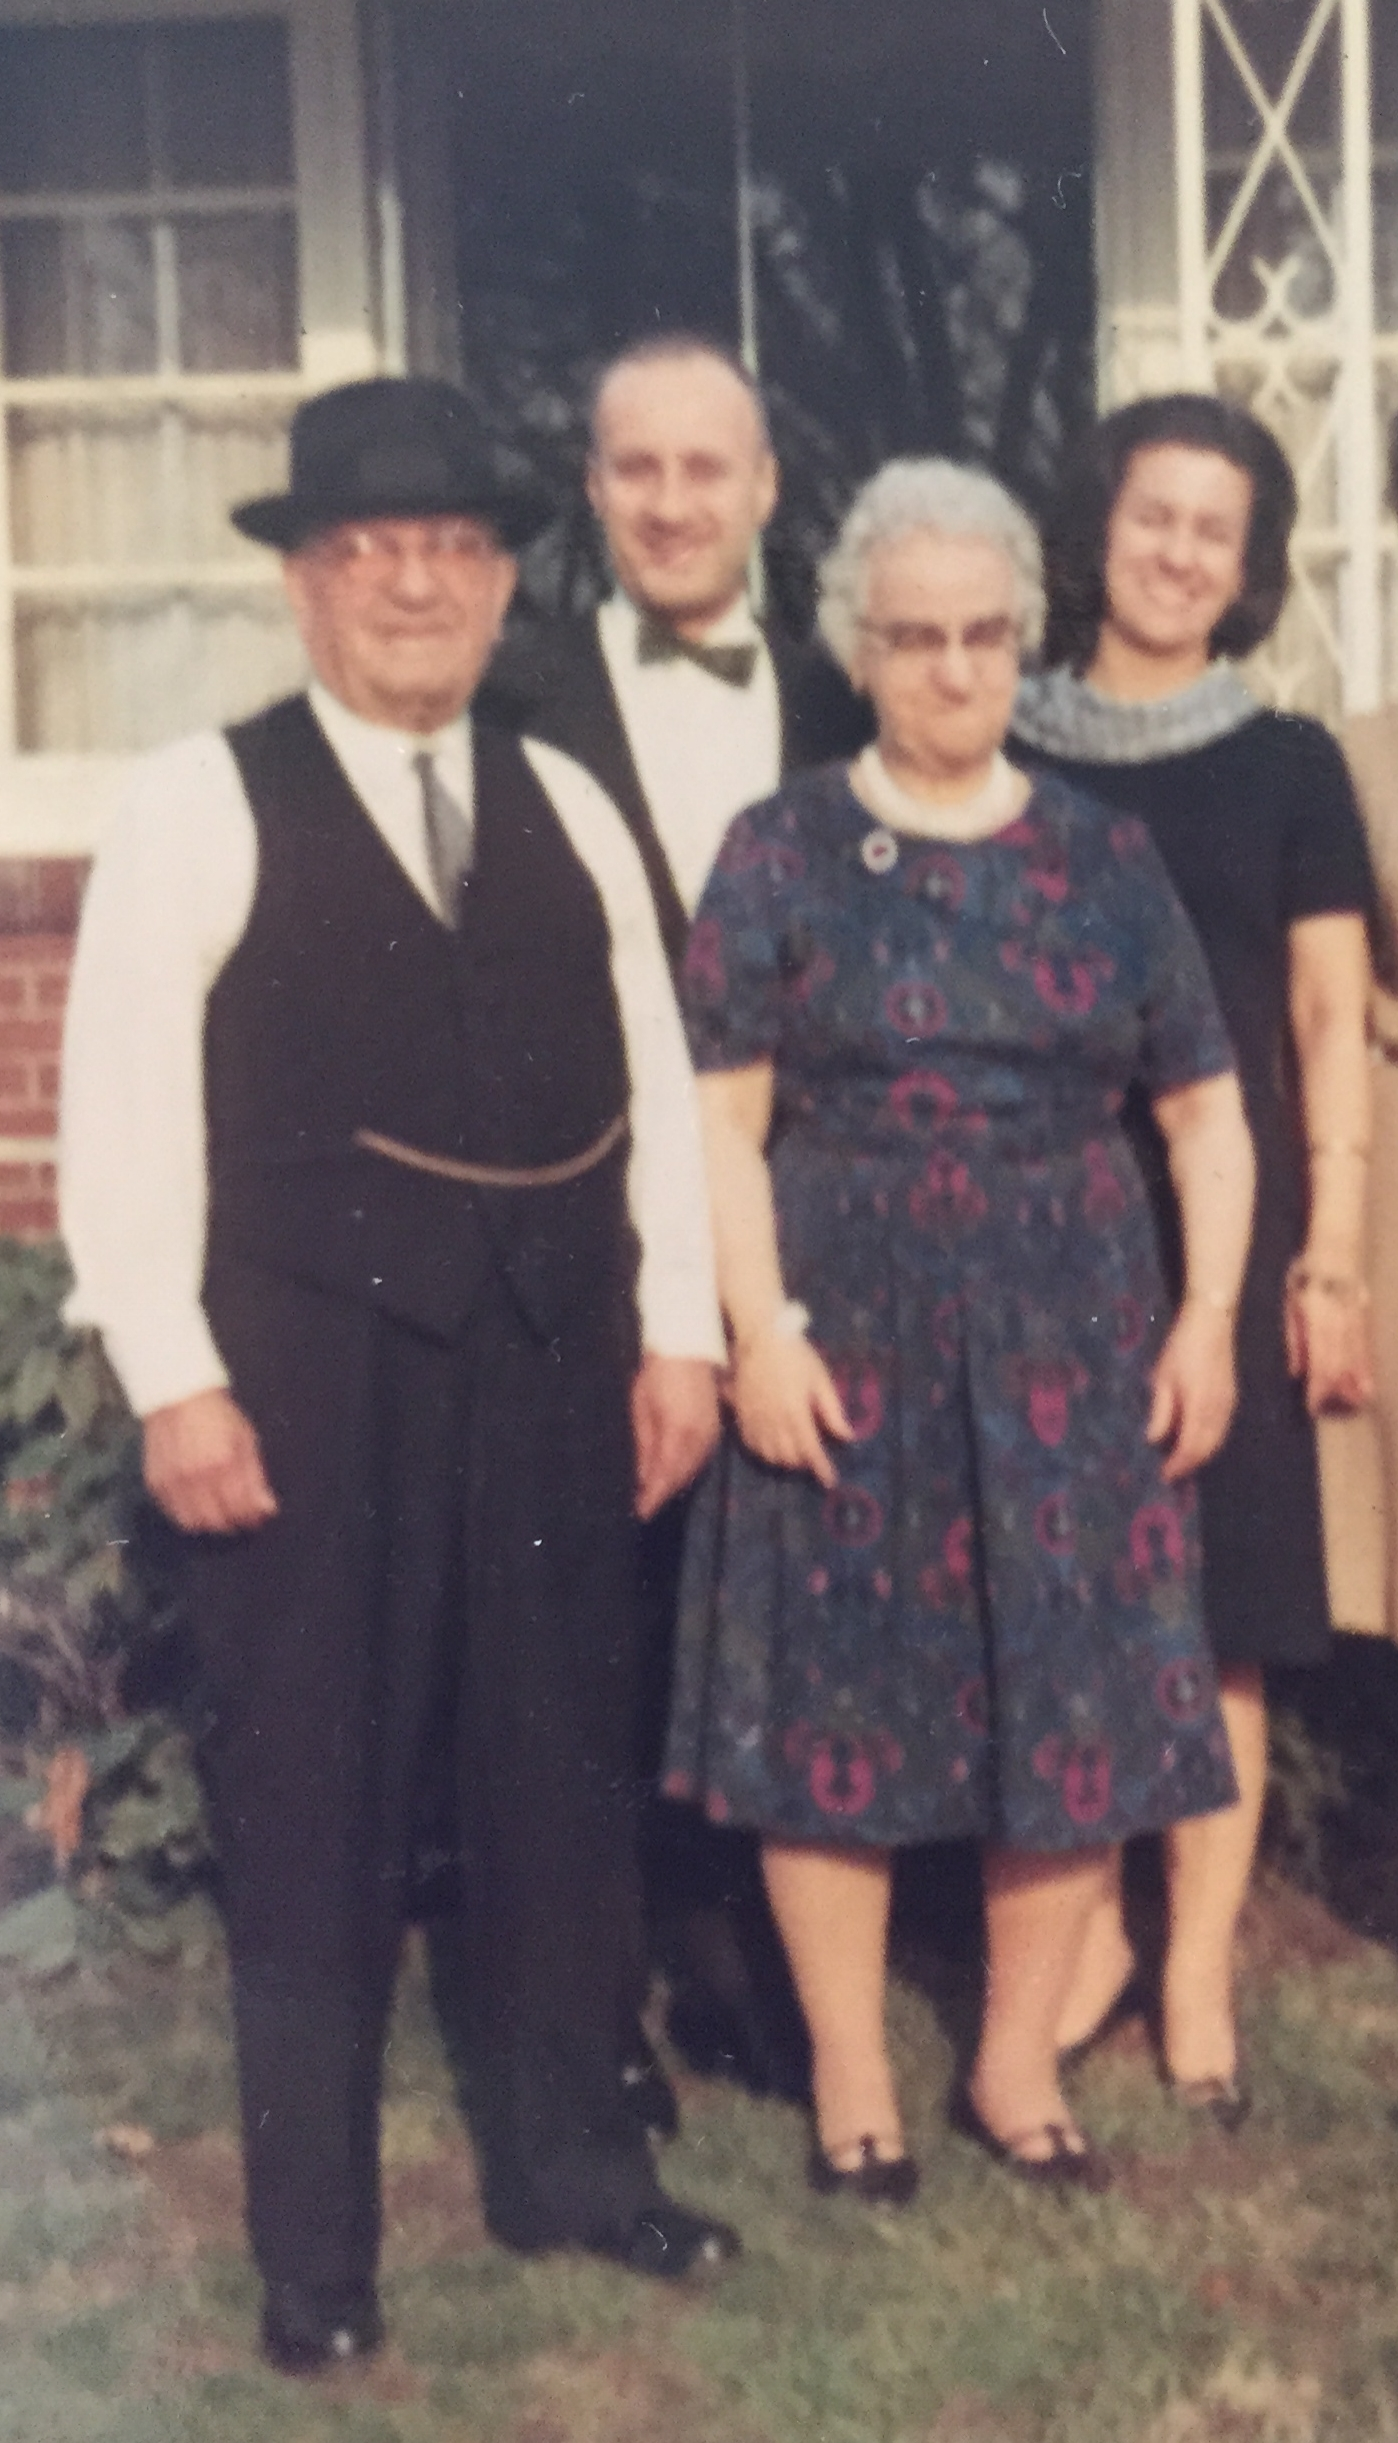 """From left to right: - Nicola Romito - Samuel Lioon (my grandfather, """"Pap Pap""""who was born in Lebanon) - Jennie Romito  - Jacqueline Romito Lioon (my grandmother, """"Nonna"""")"""